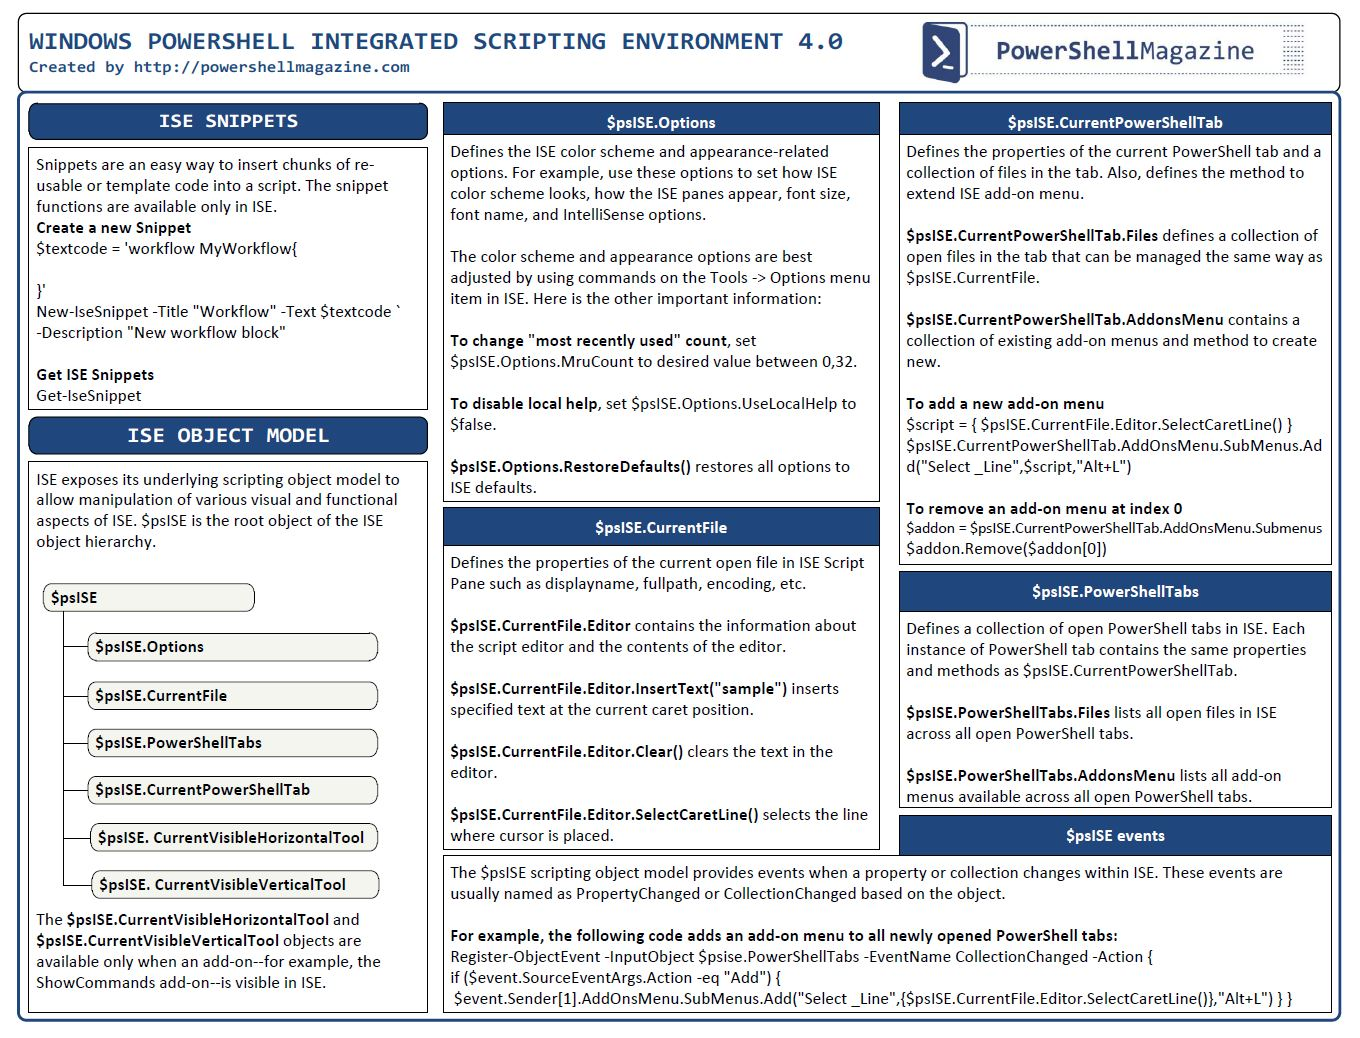 microsoft windows #powershell 4.0 and other quick reference guides